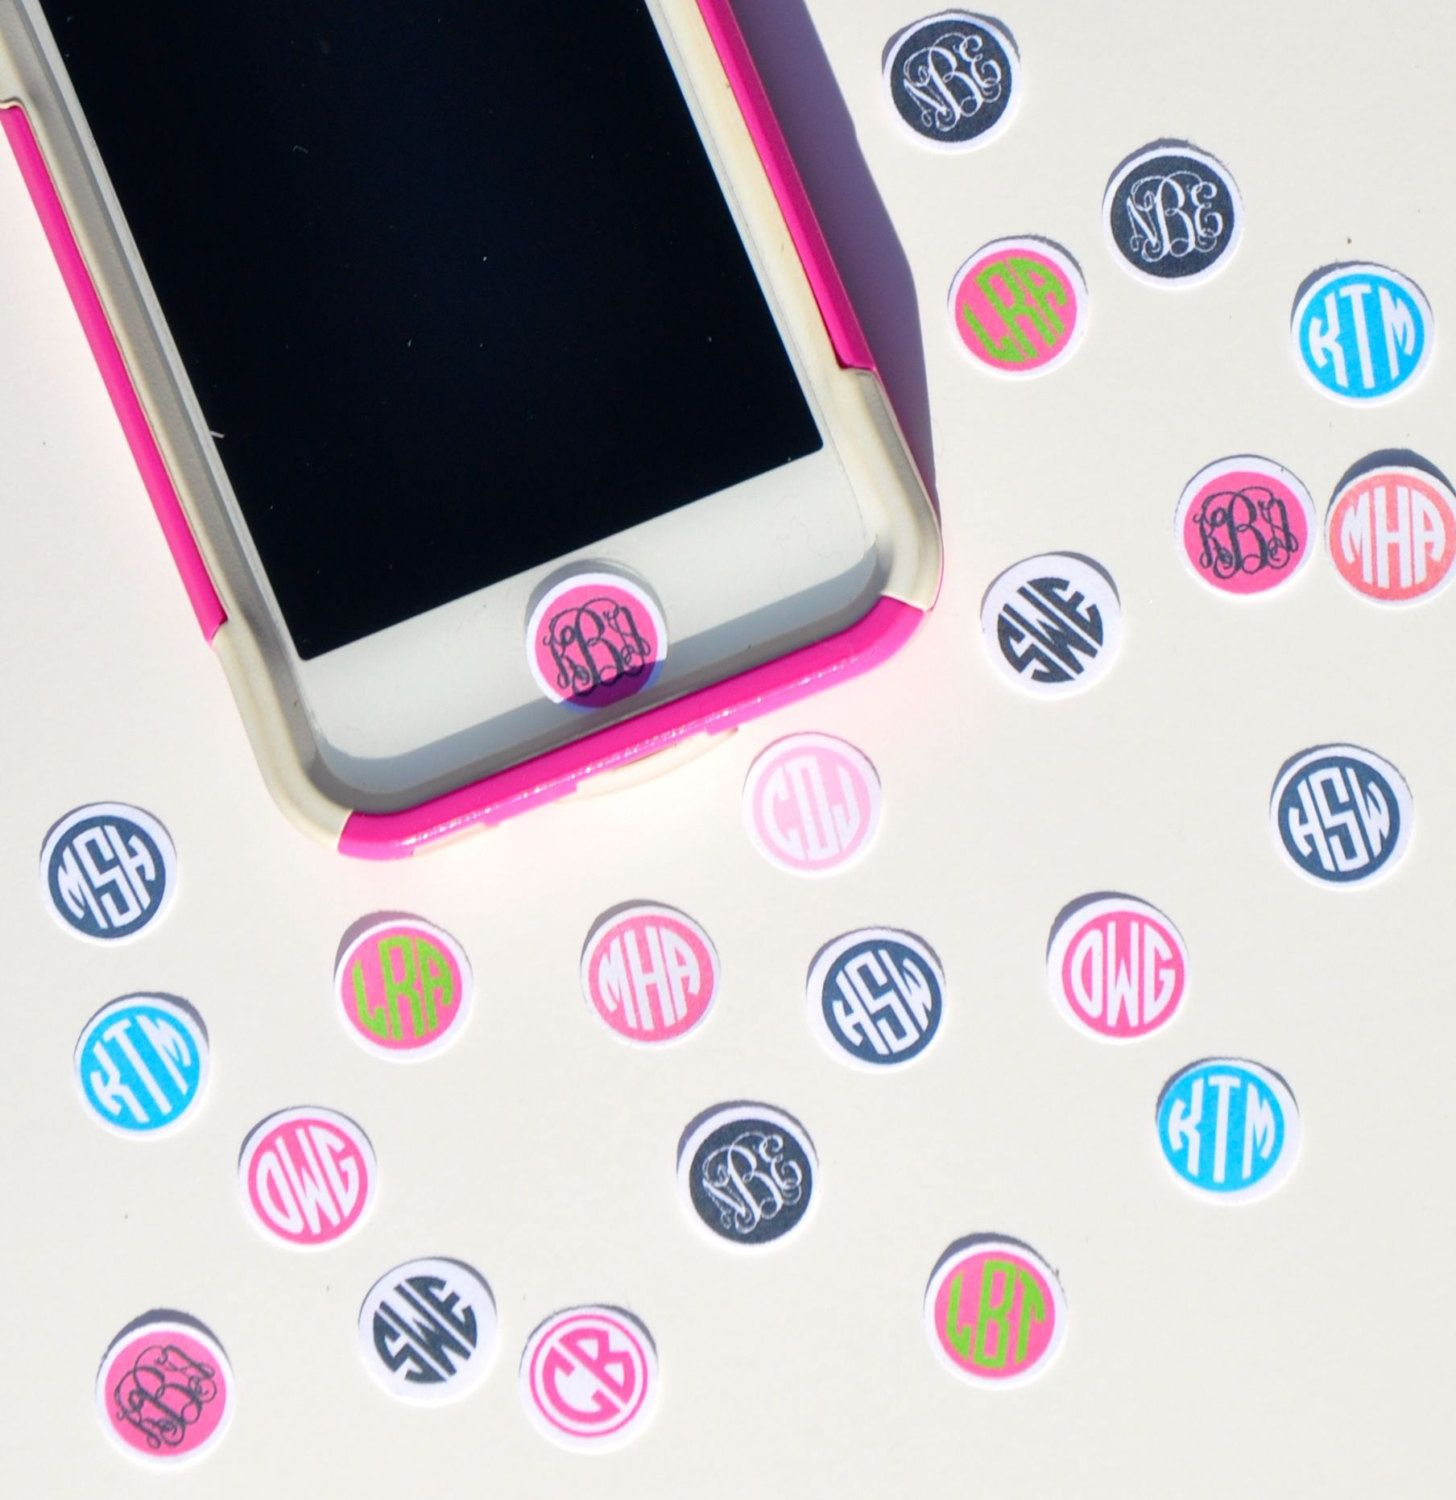 personalized  custom monogrammed iphone ipod ipad home button stickers